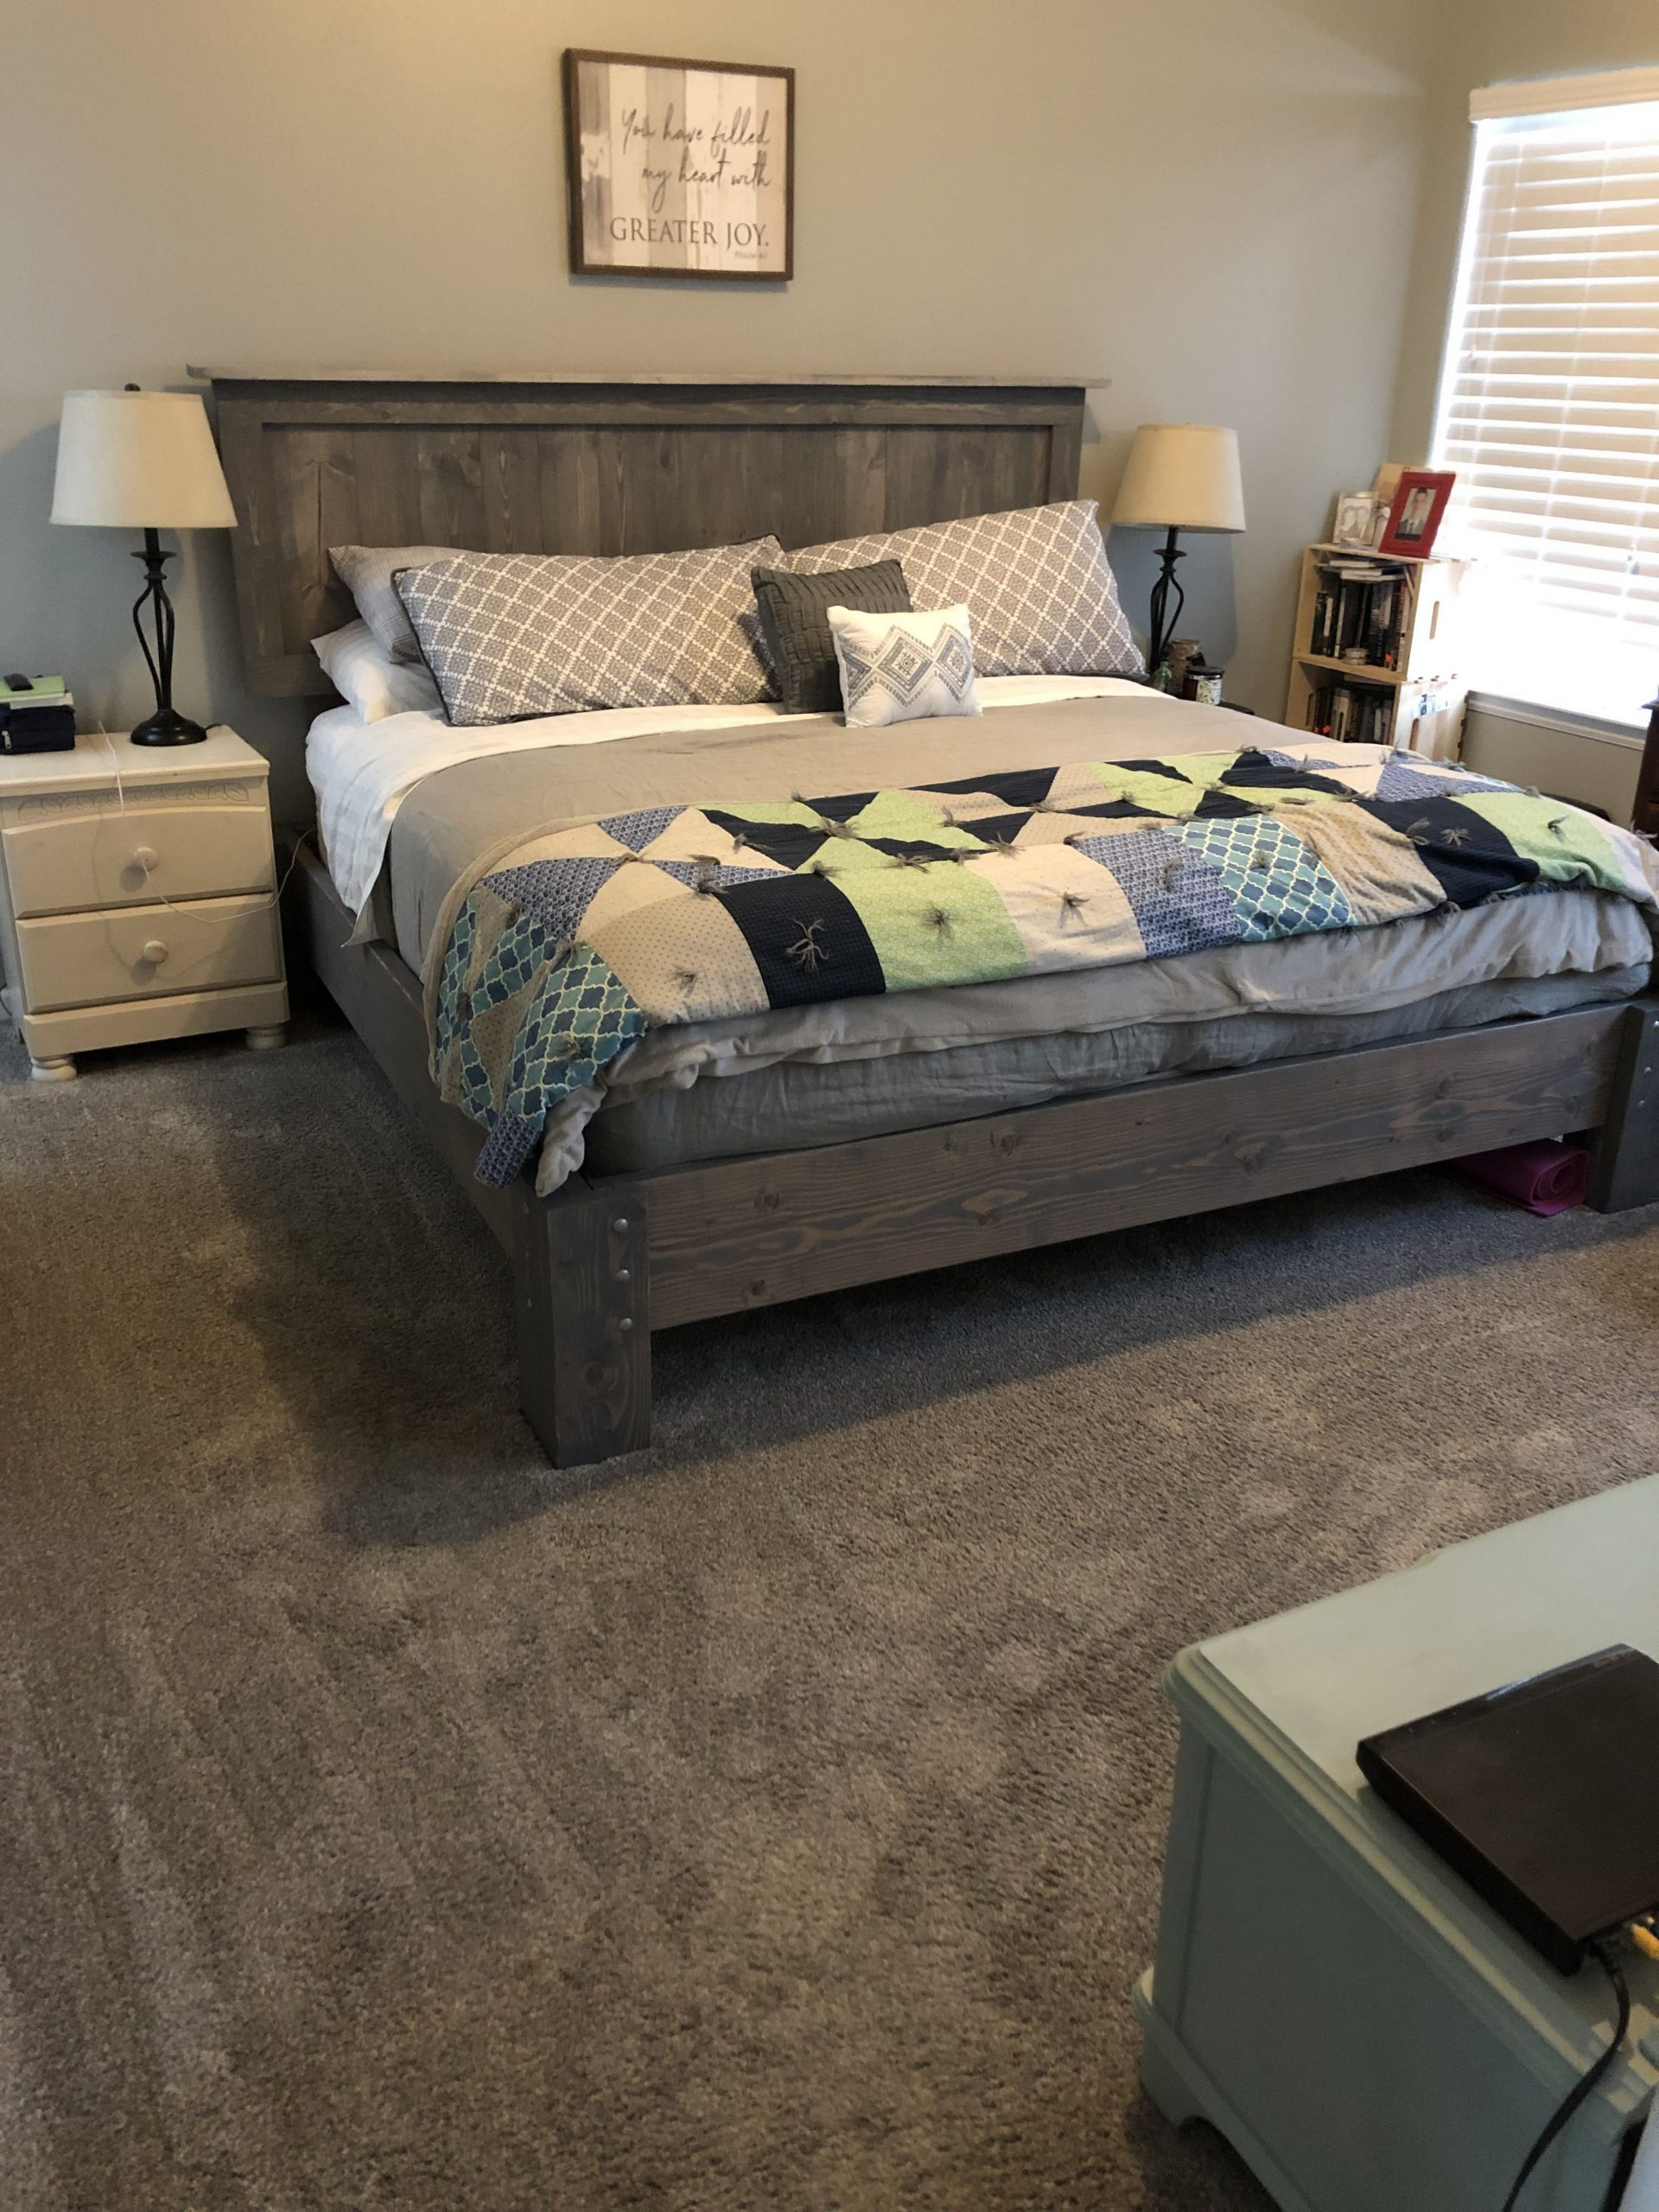 DIY king bed frame and headboard